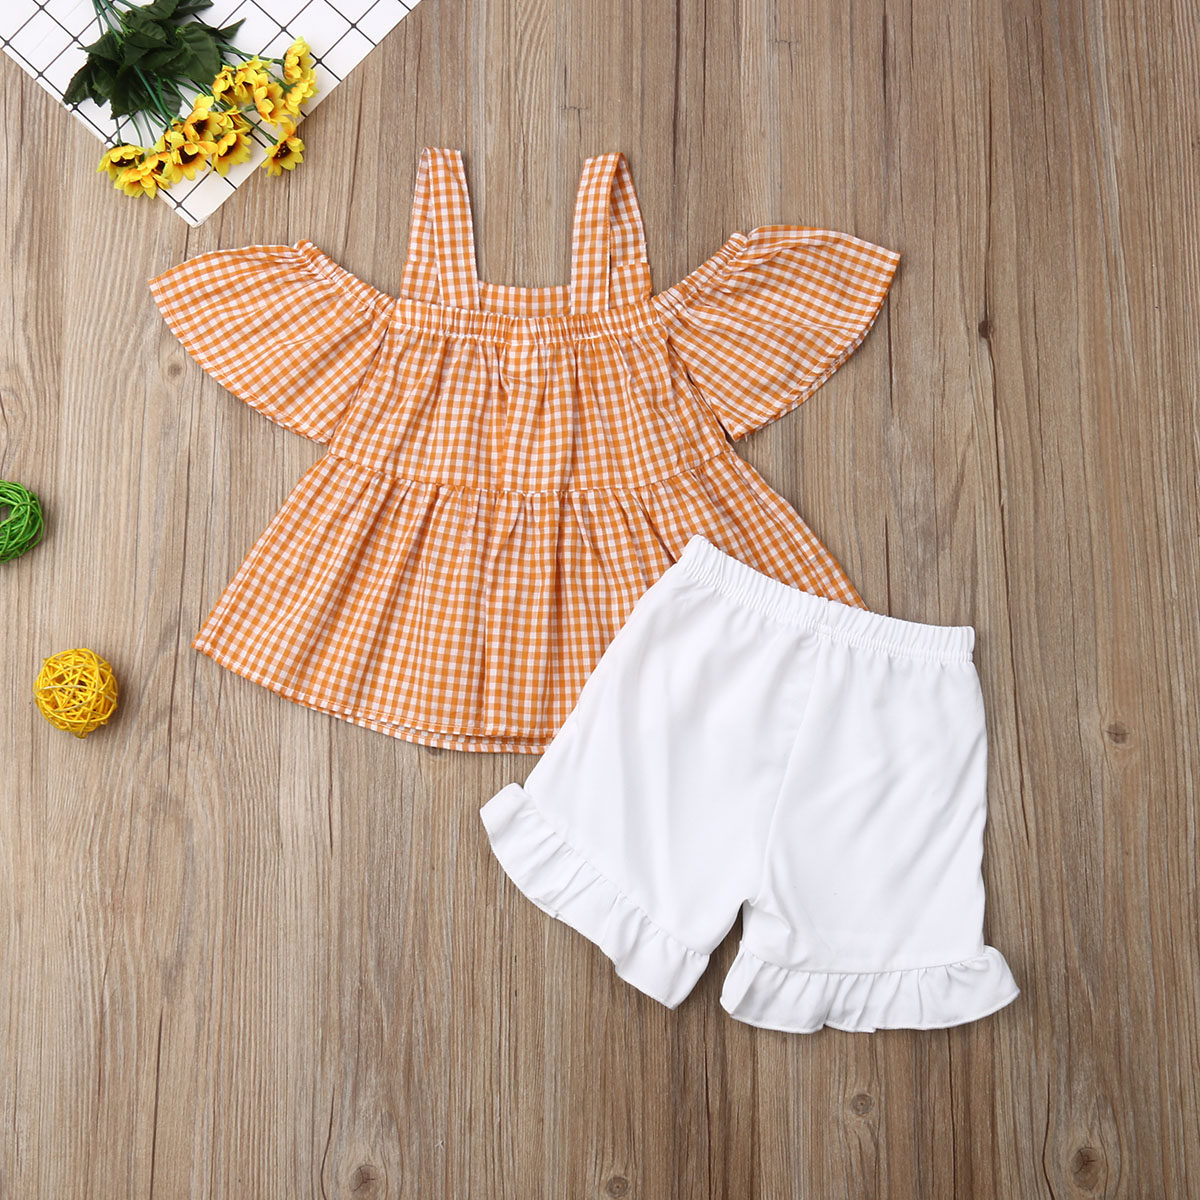 Toddler Kid Baby Girl Clothes Off Shoulder Strap Top Shorts Pants Summer Outfits